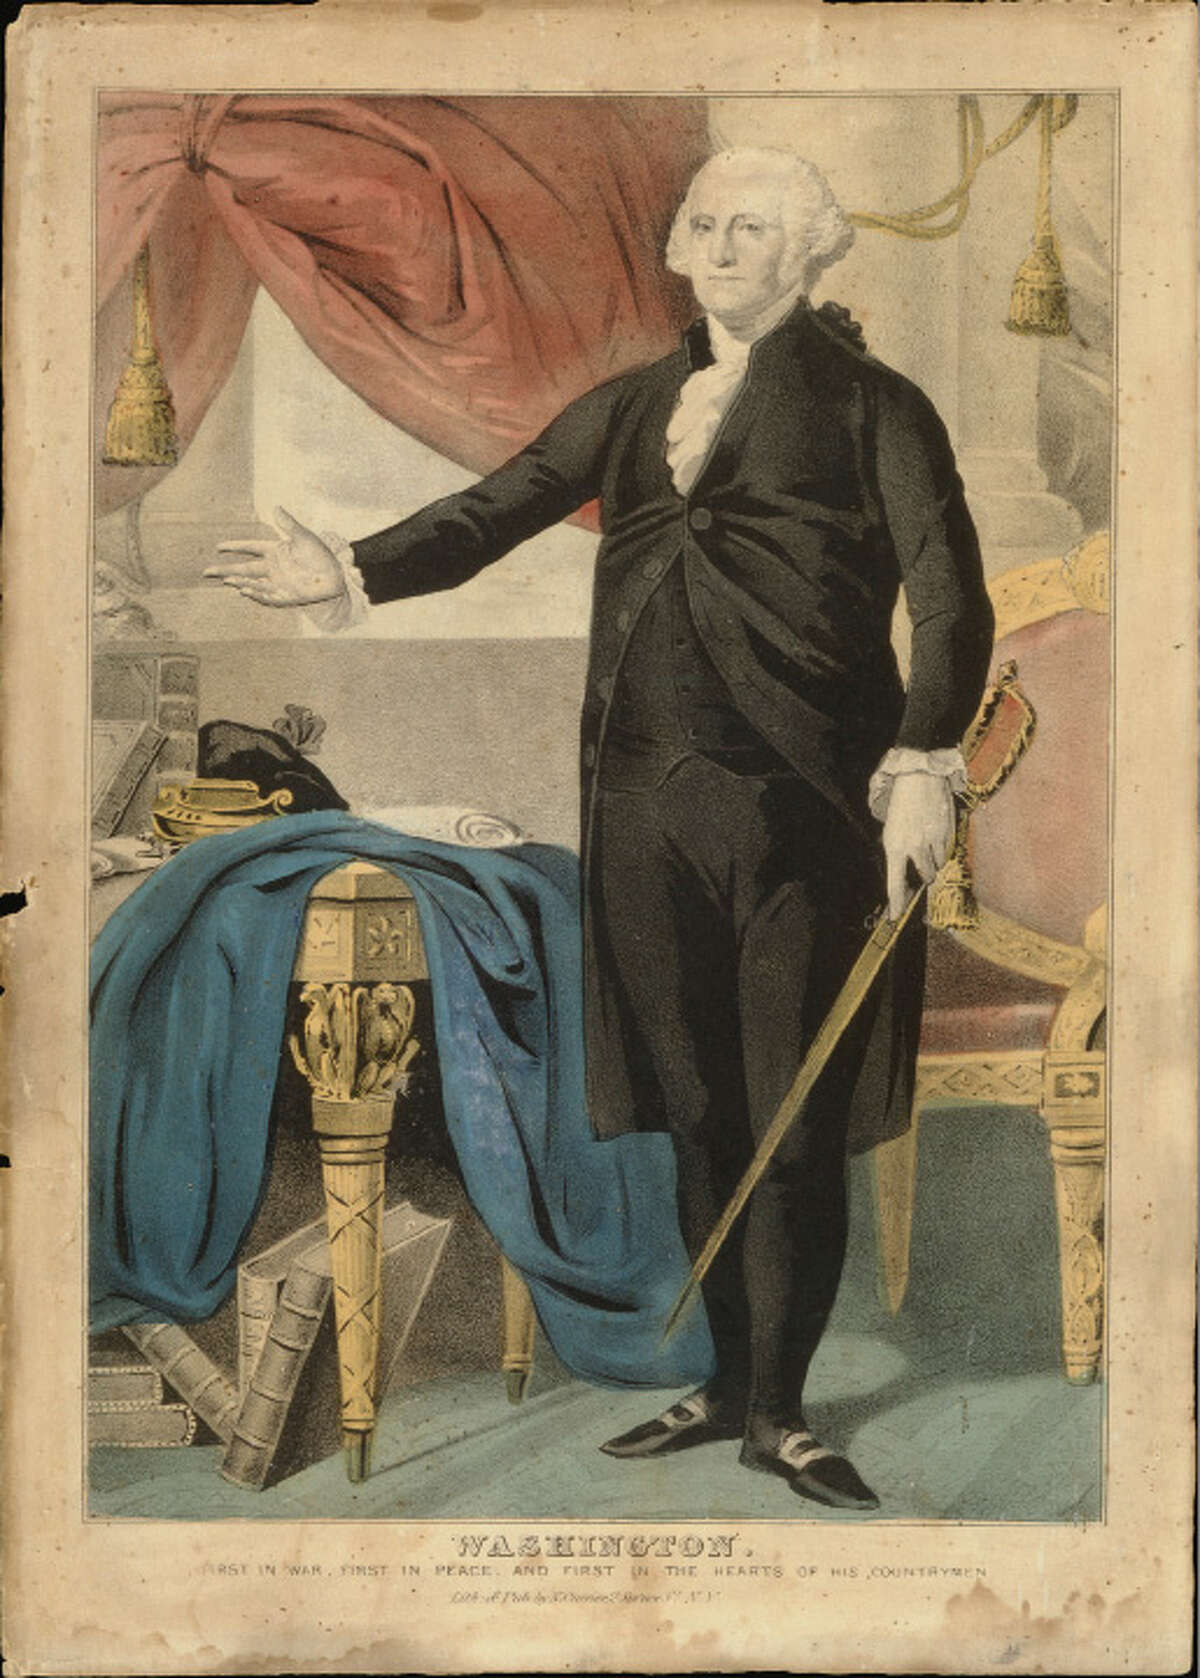 """George Washington (1732-1799) Nathanial Currier 1840 Color lithograph, ht.14"""" x w.10 3/16"""" Albany Institute of History & Art, Gift of Henry W. Snyder, x1940.330.66"""